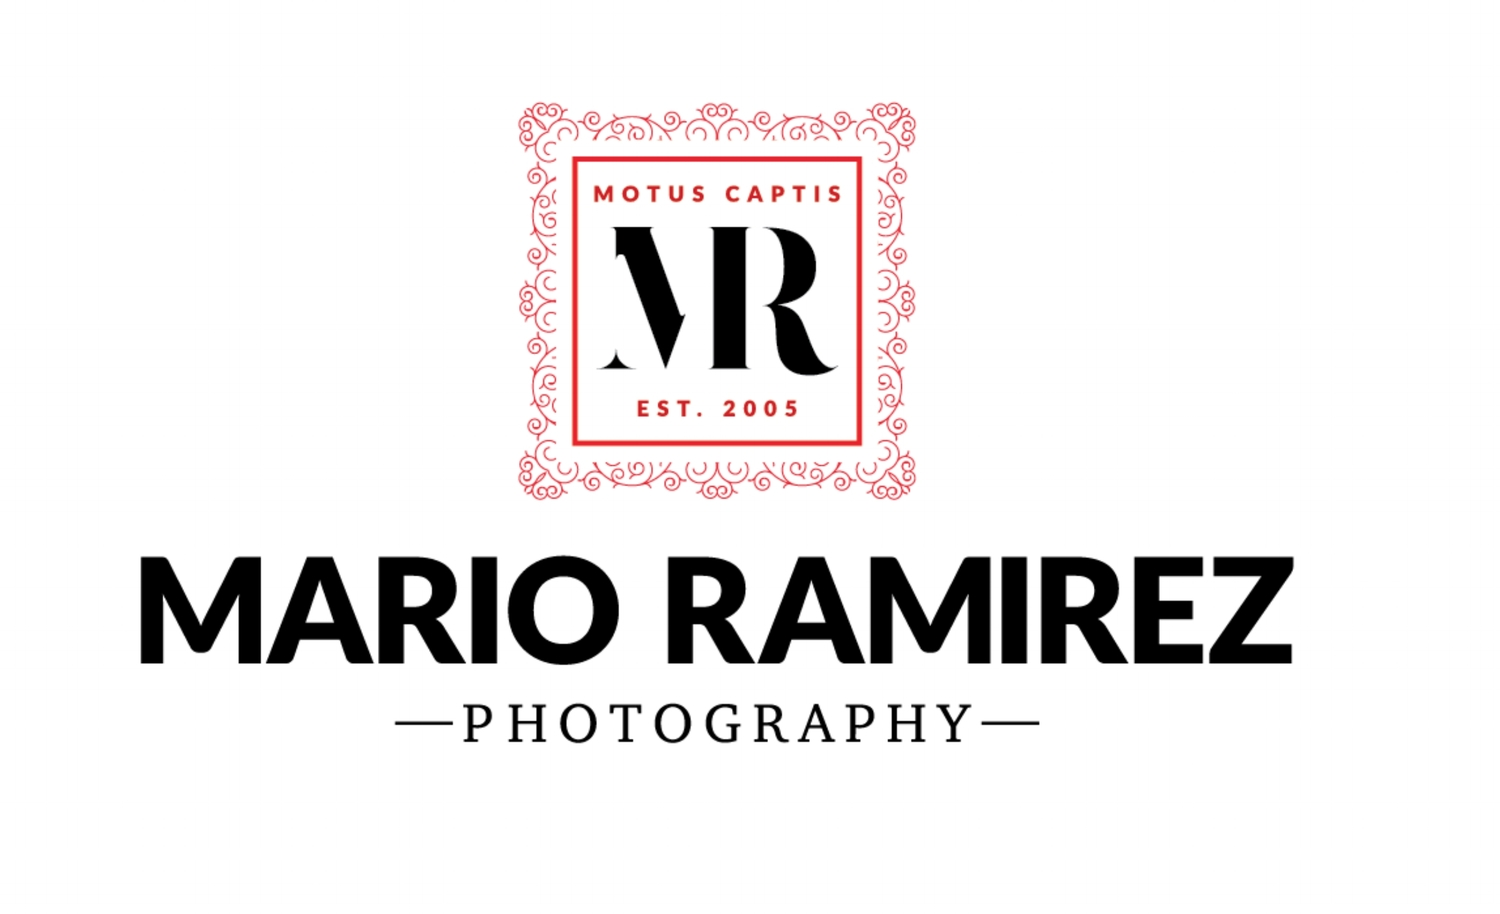 Mario Ramirez Photography